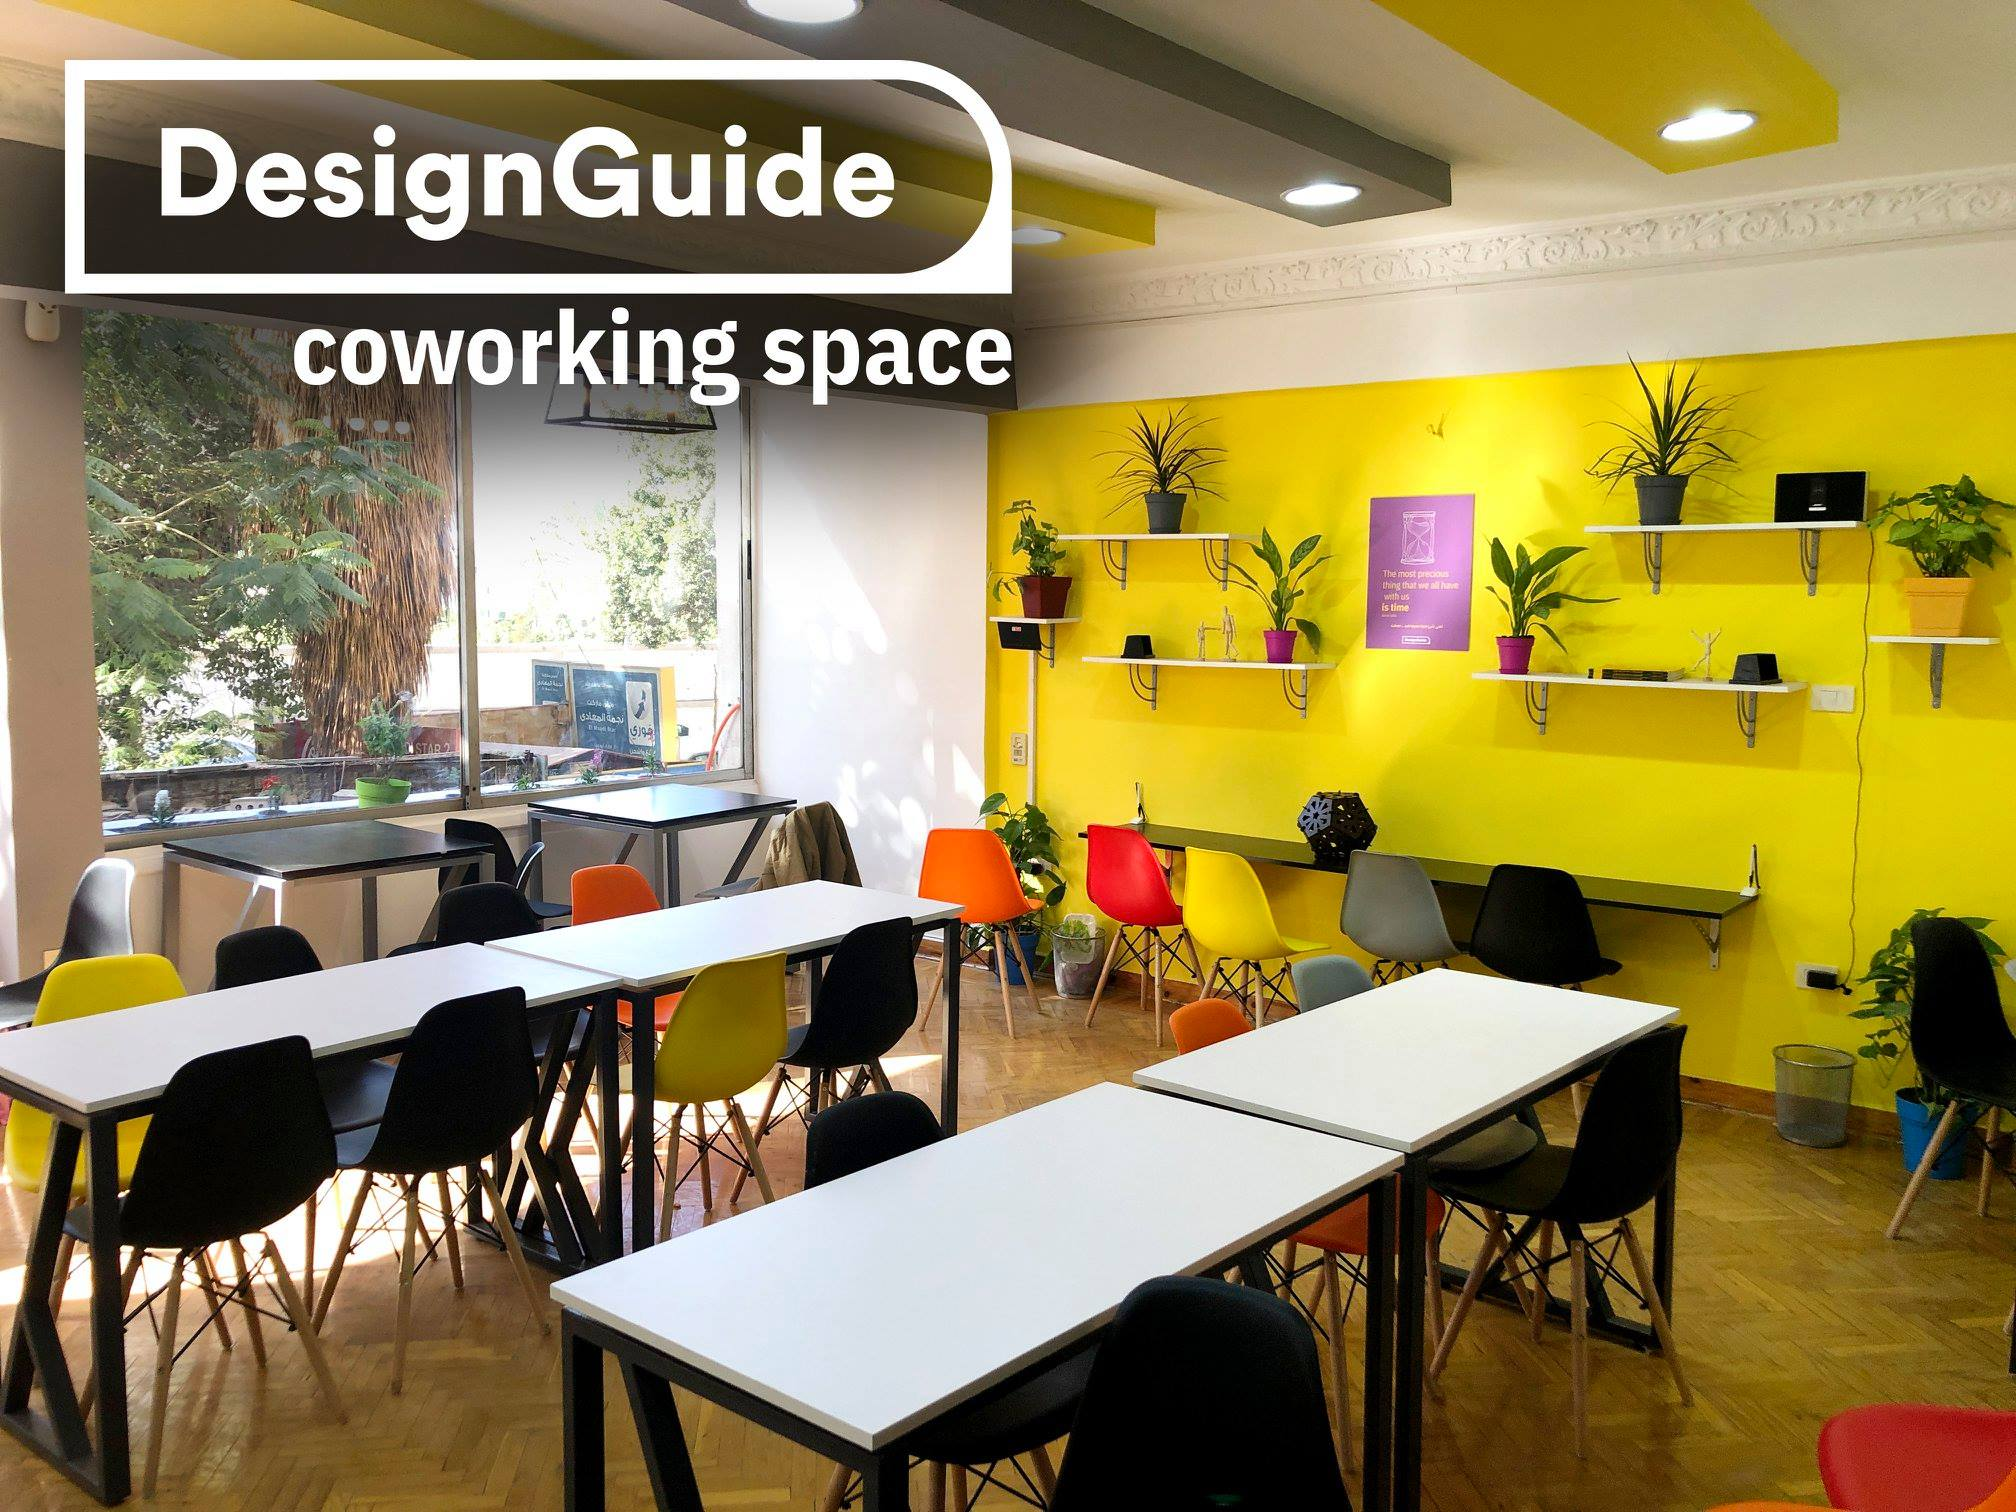 Design Guide Coworking Space, Cairo